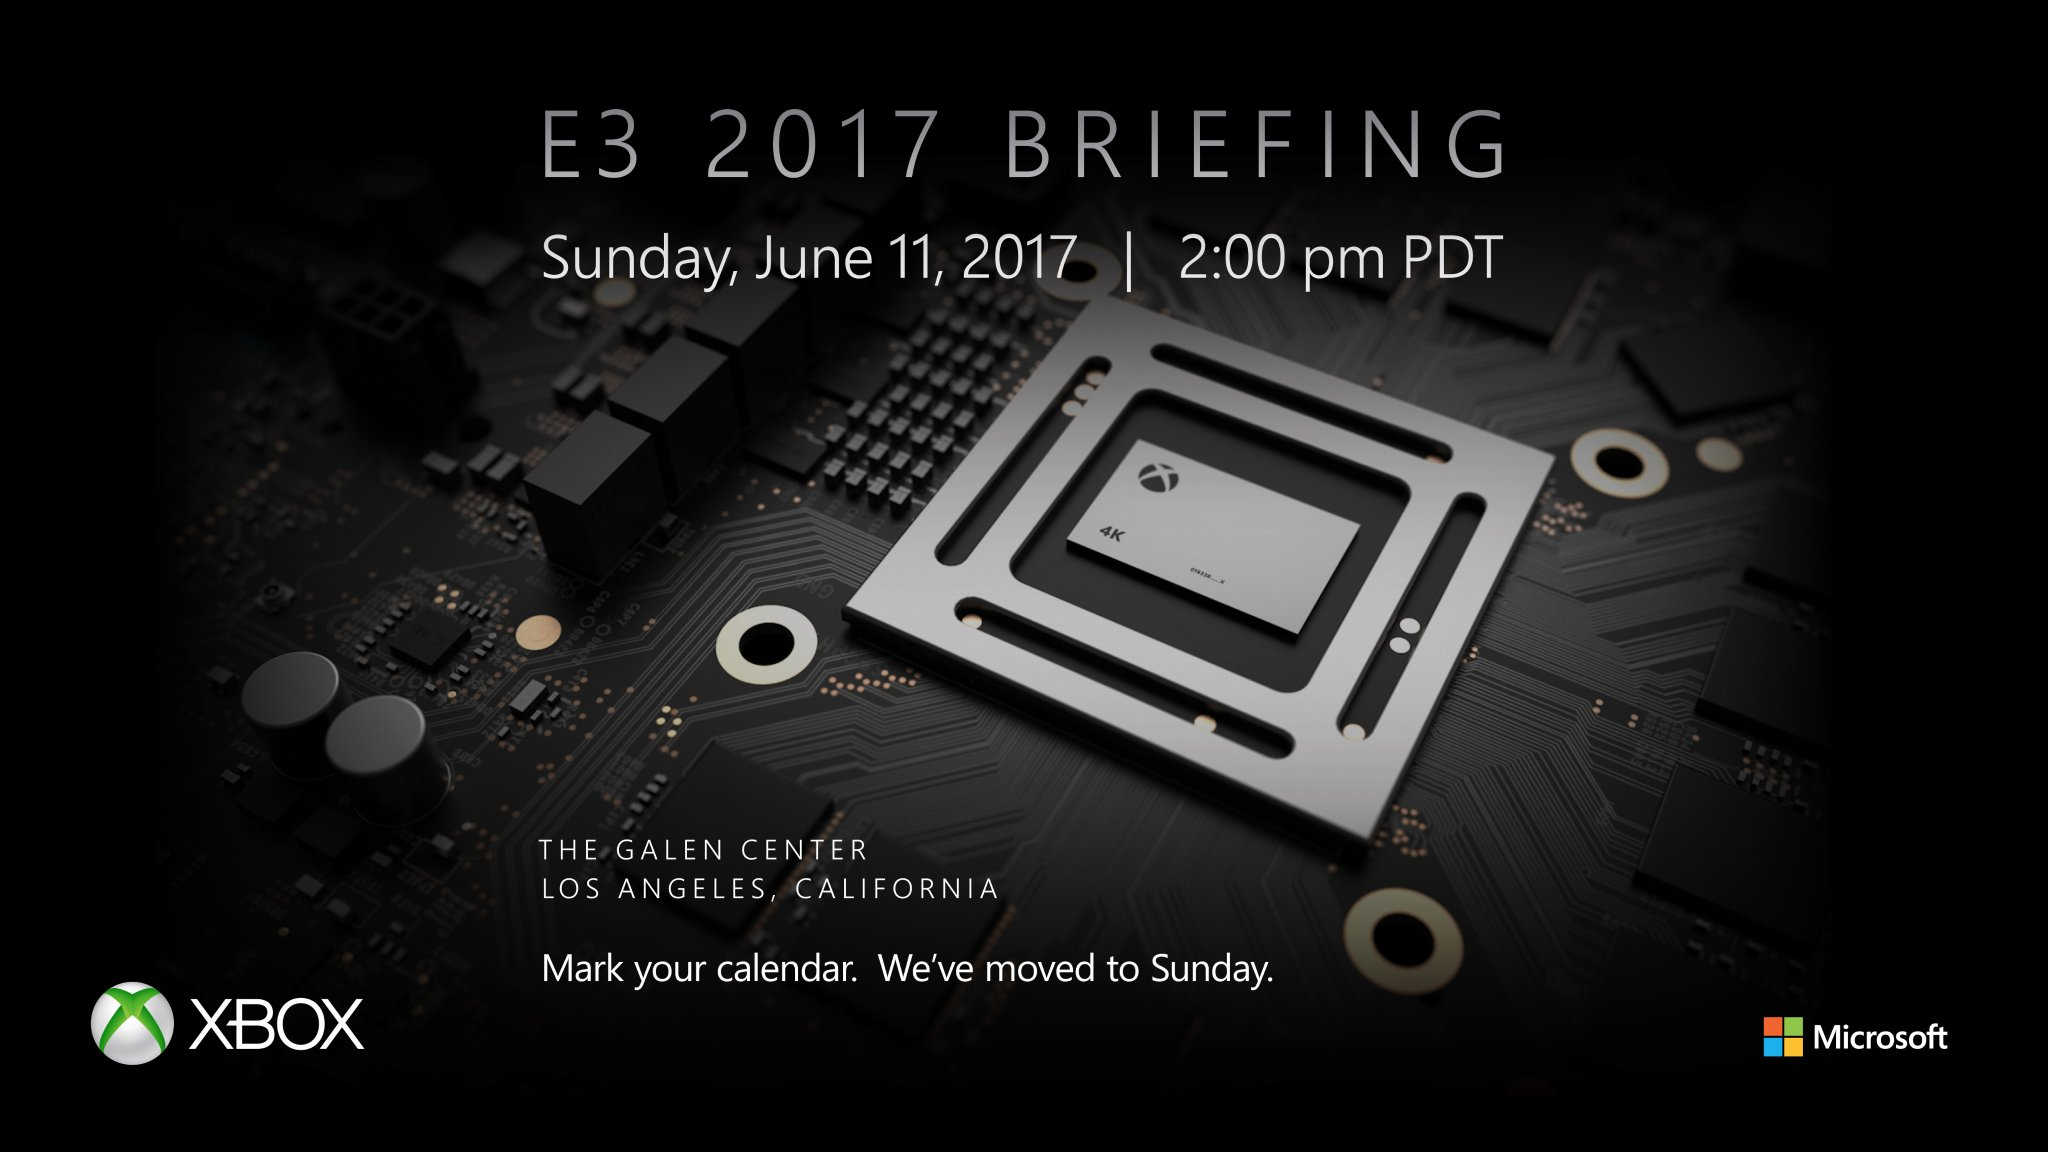 microsoft, game console, project scorpio, playstation 4 pro